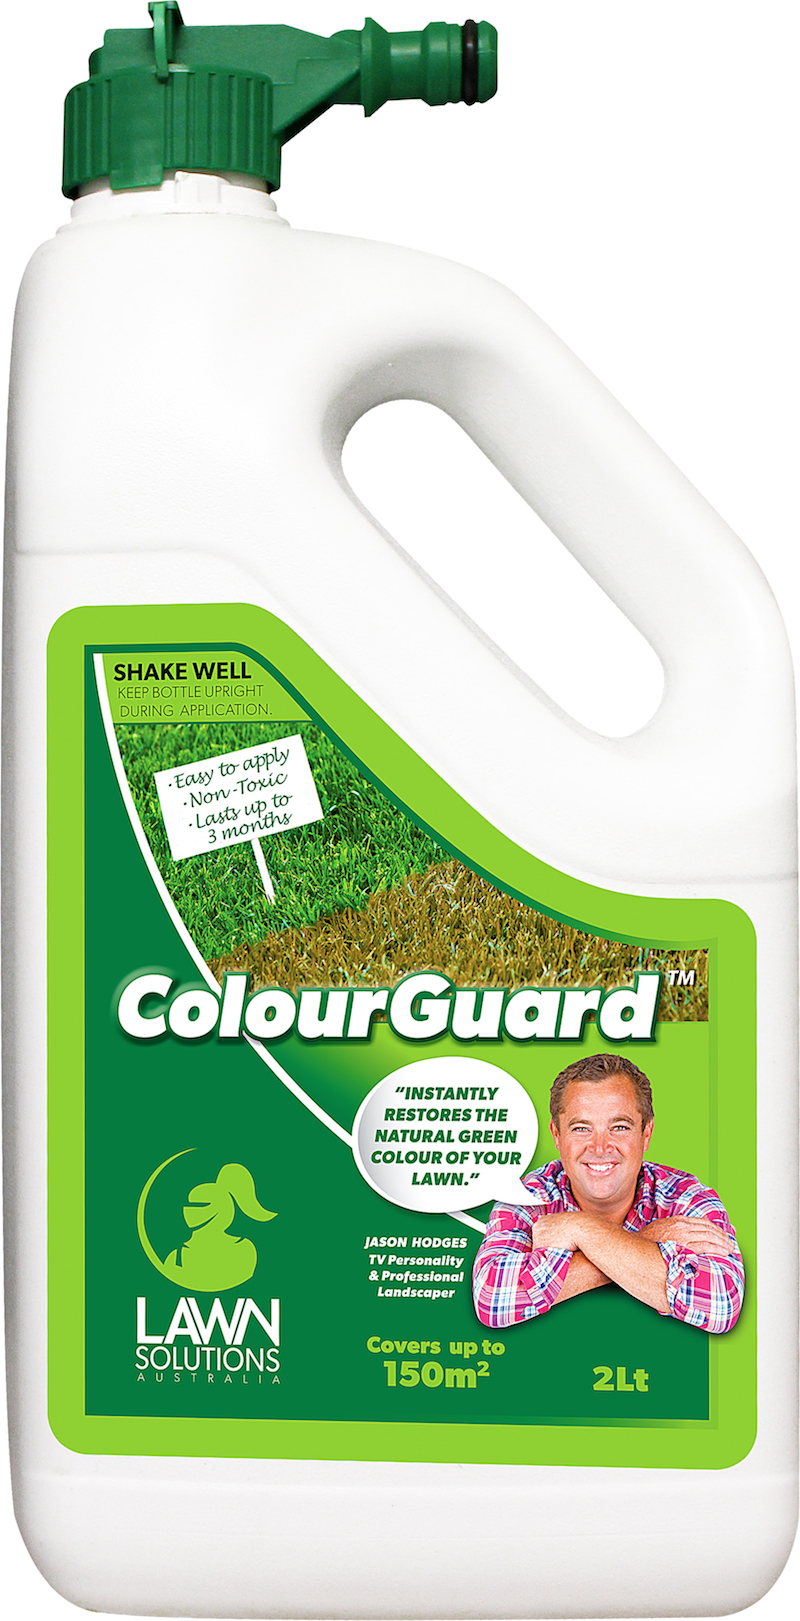 Lawn Solutions Colour Guard